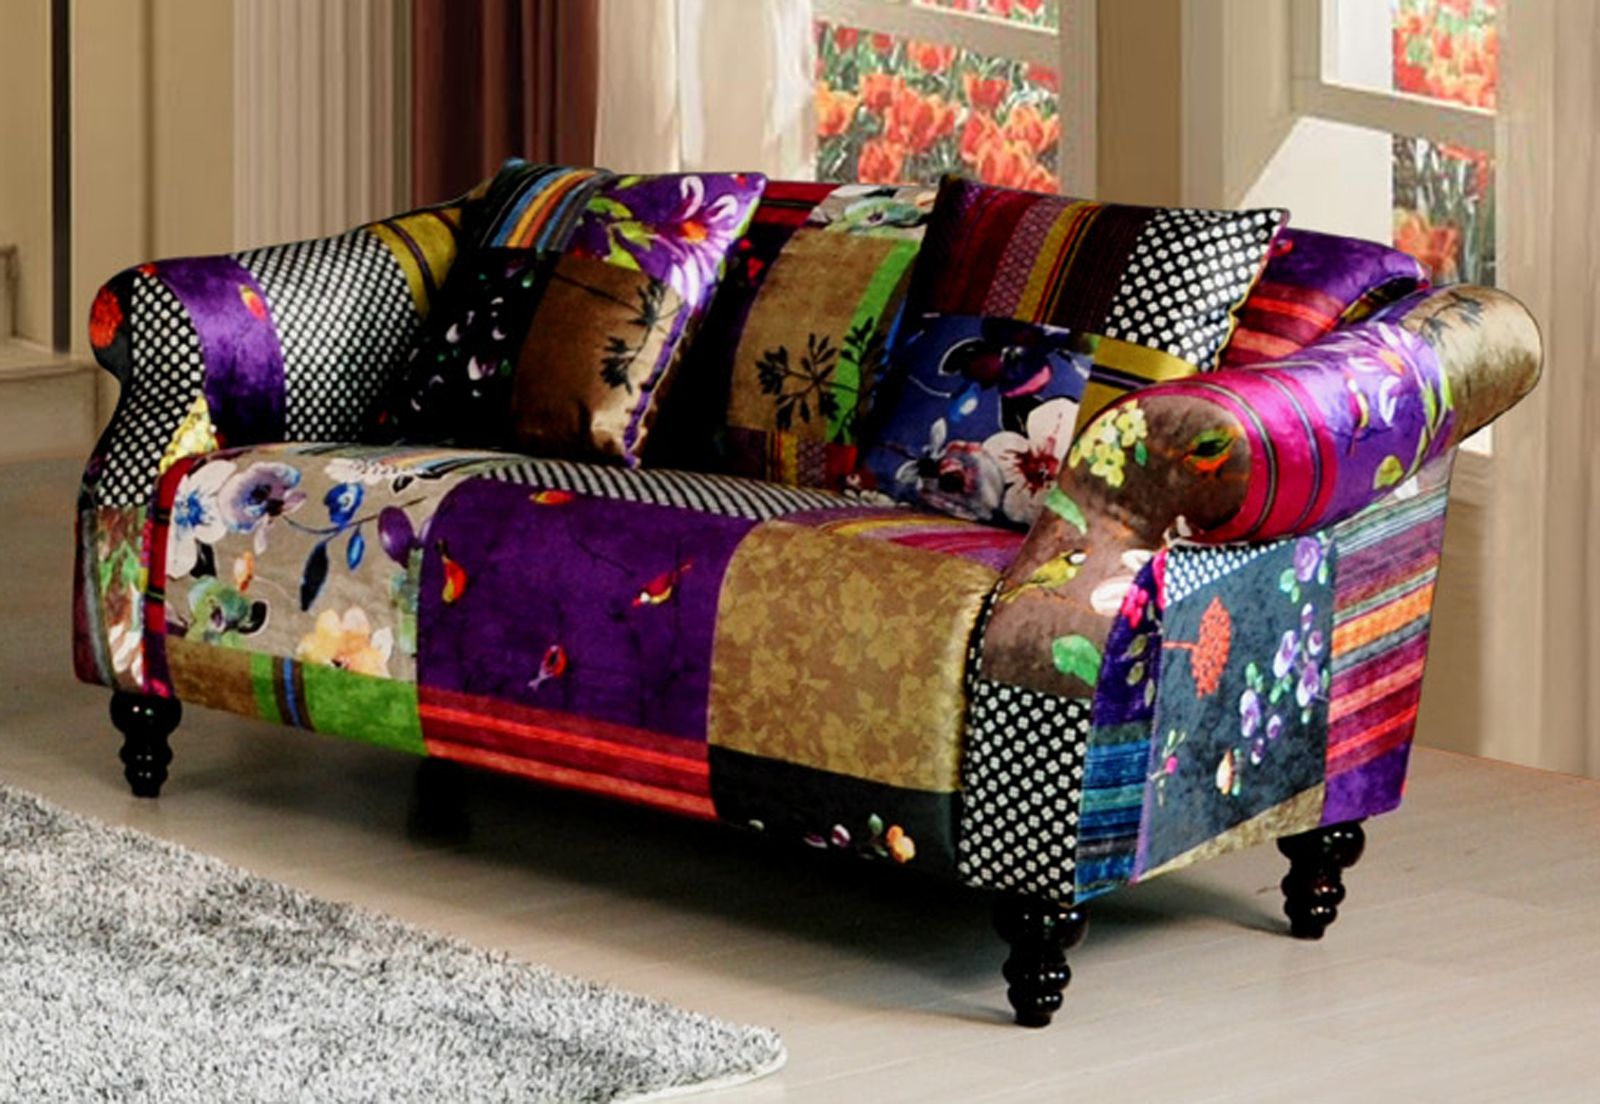 Patchwork Sofa Anna Shout 2 Seater Luxury Fabric Patchwork Sofa Ebay